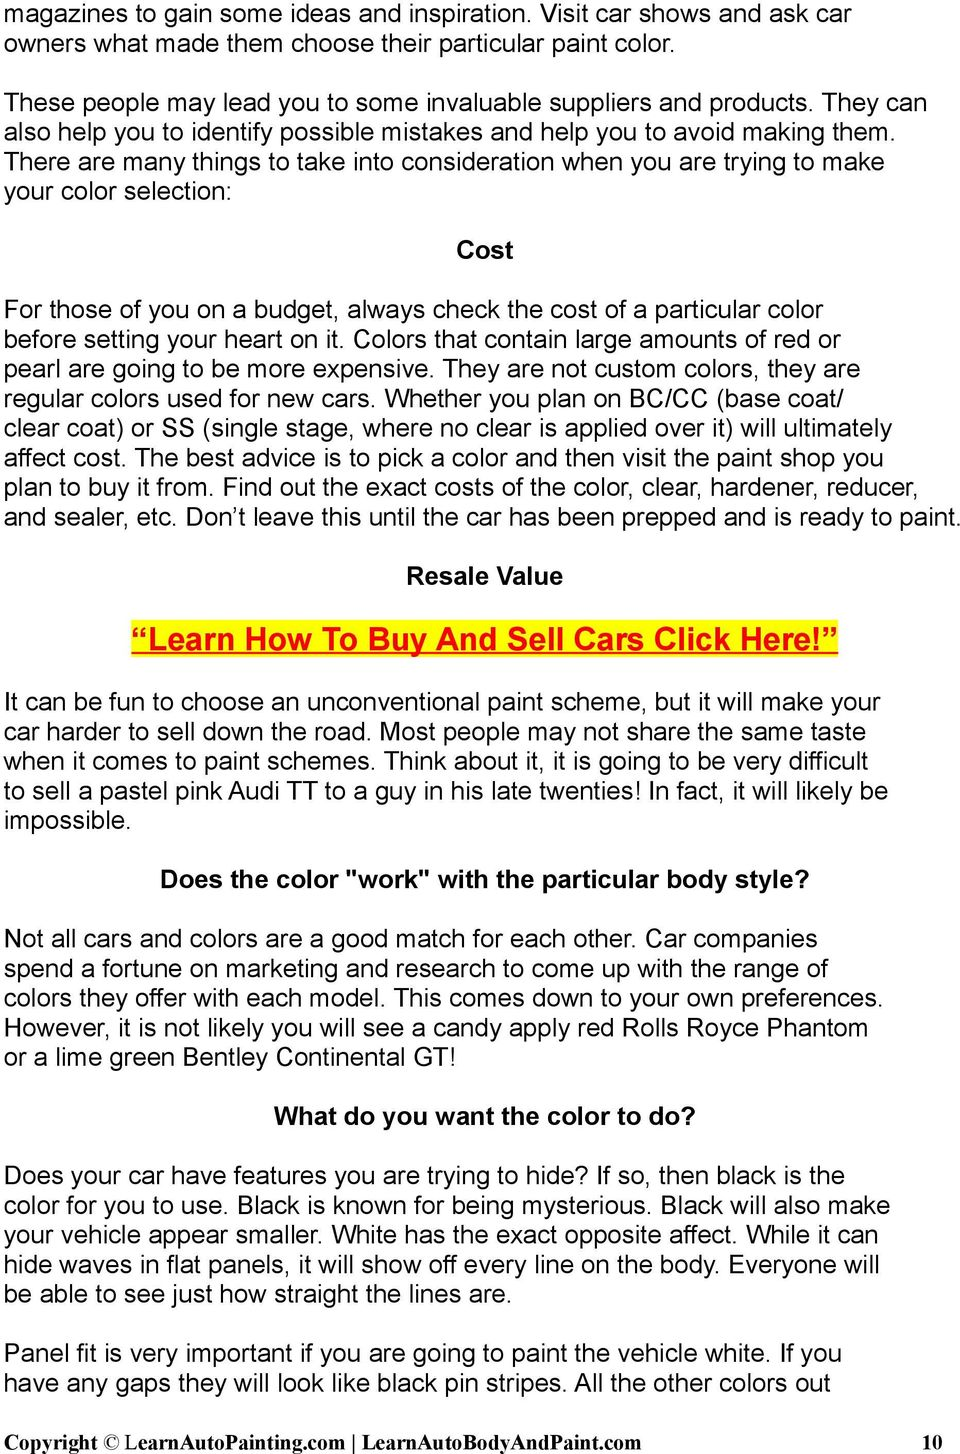 How To Paint Your Car The Written Guide Pdf Free Download